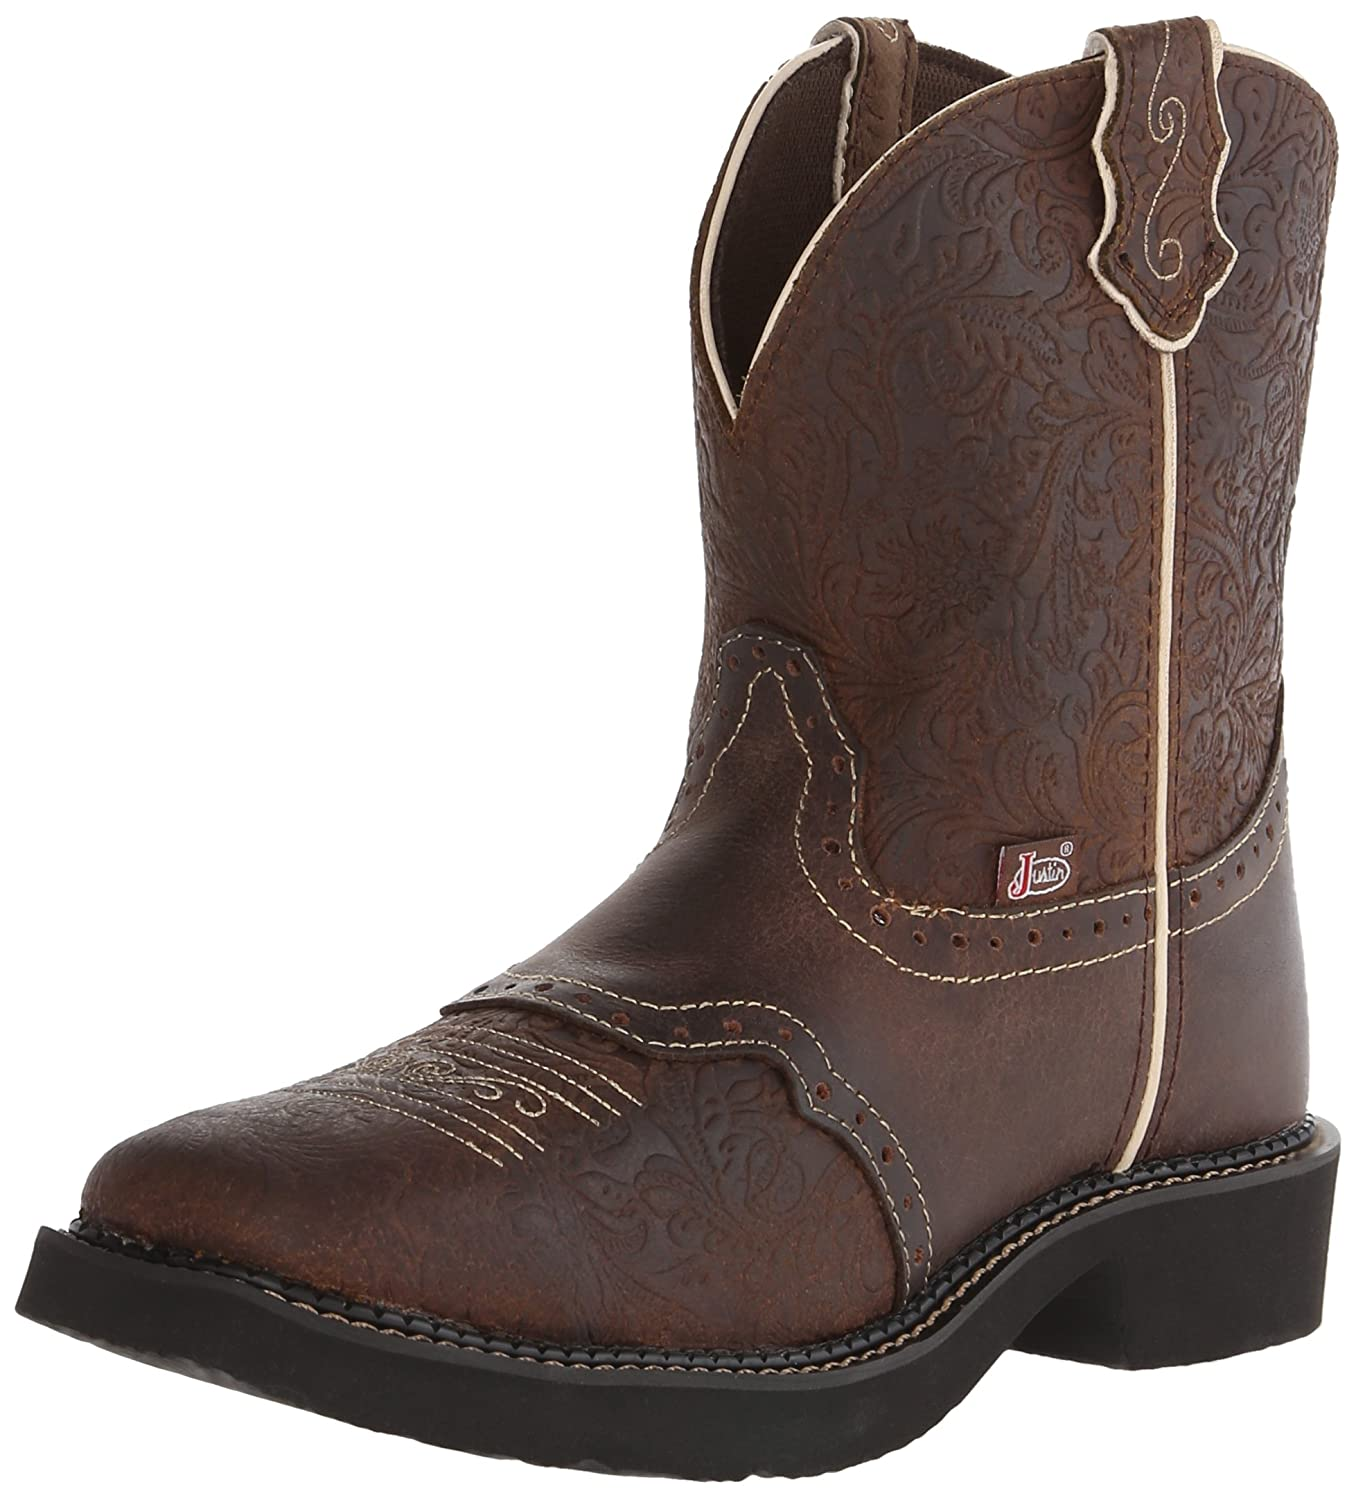 Justin Boots Women's Gypsy Collection Western Boot B00LCT5Z0I 7 B(M) US|Brown Flower Embossed